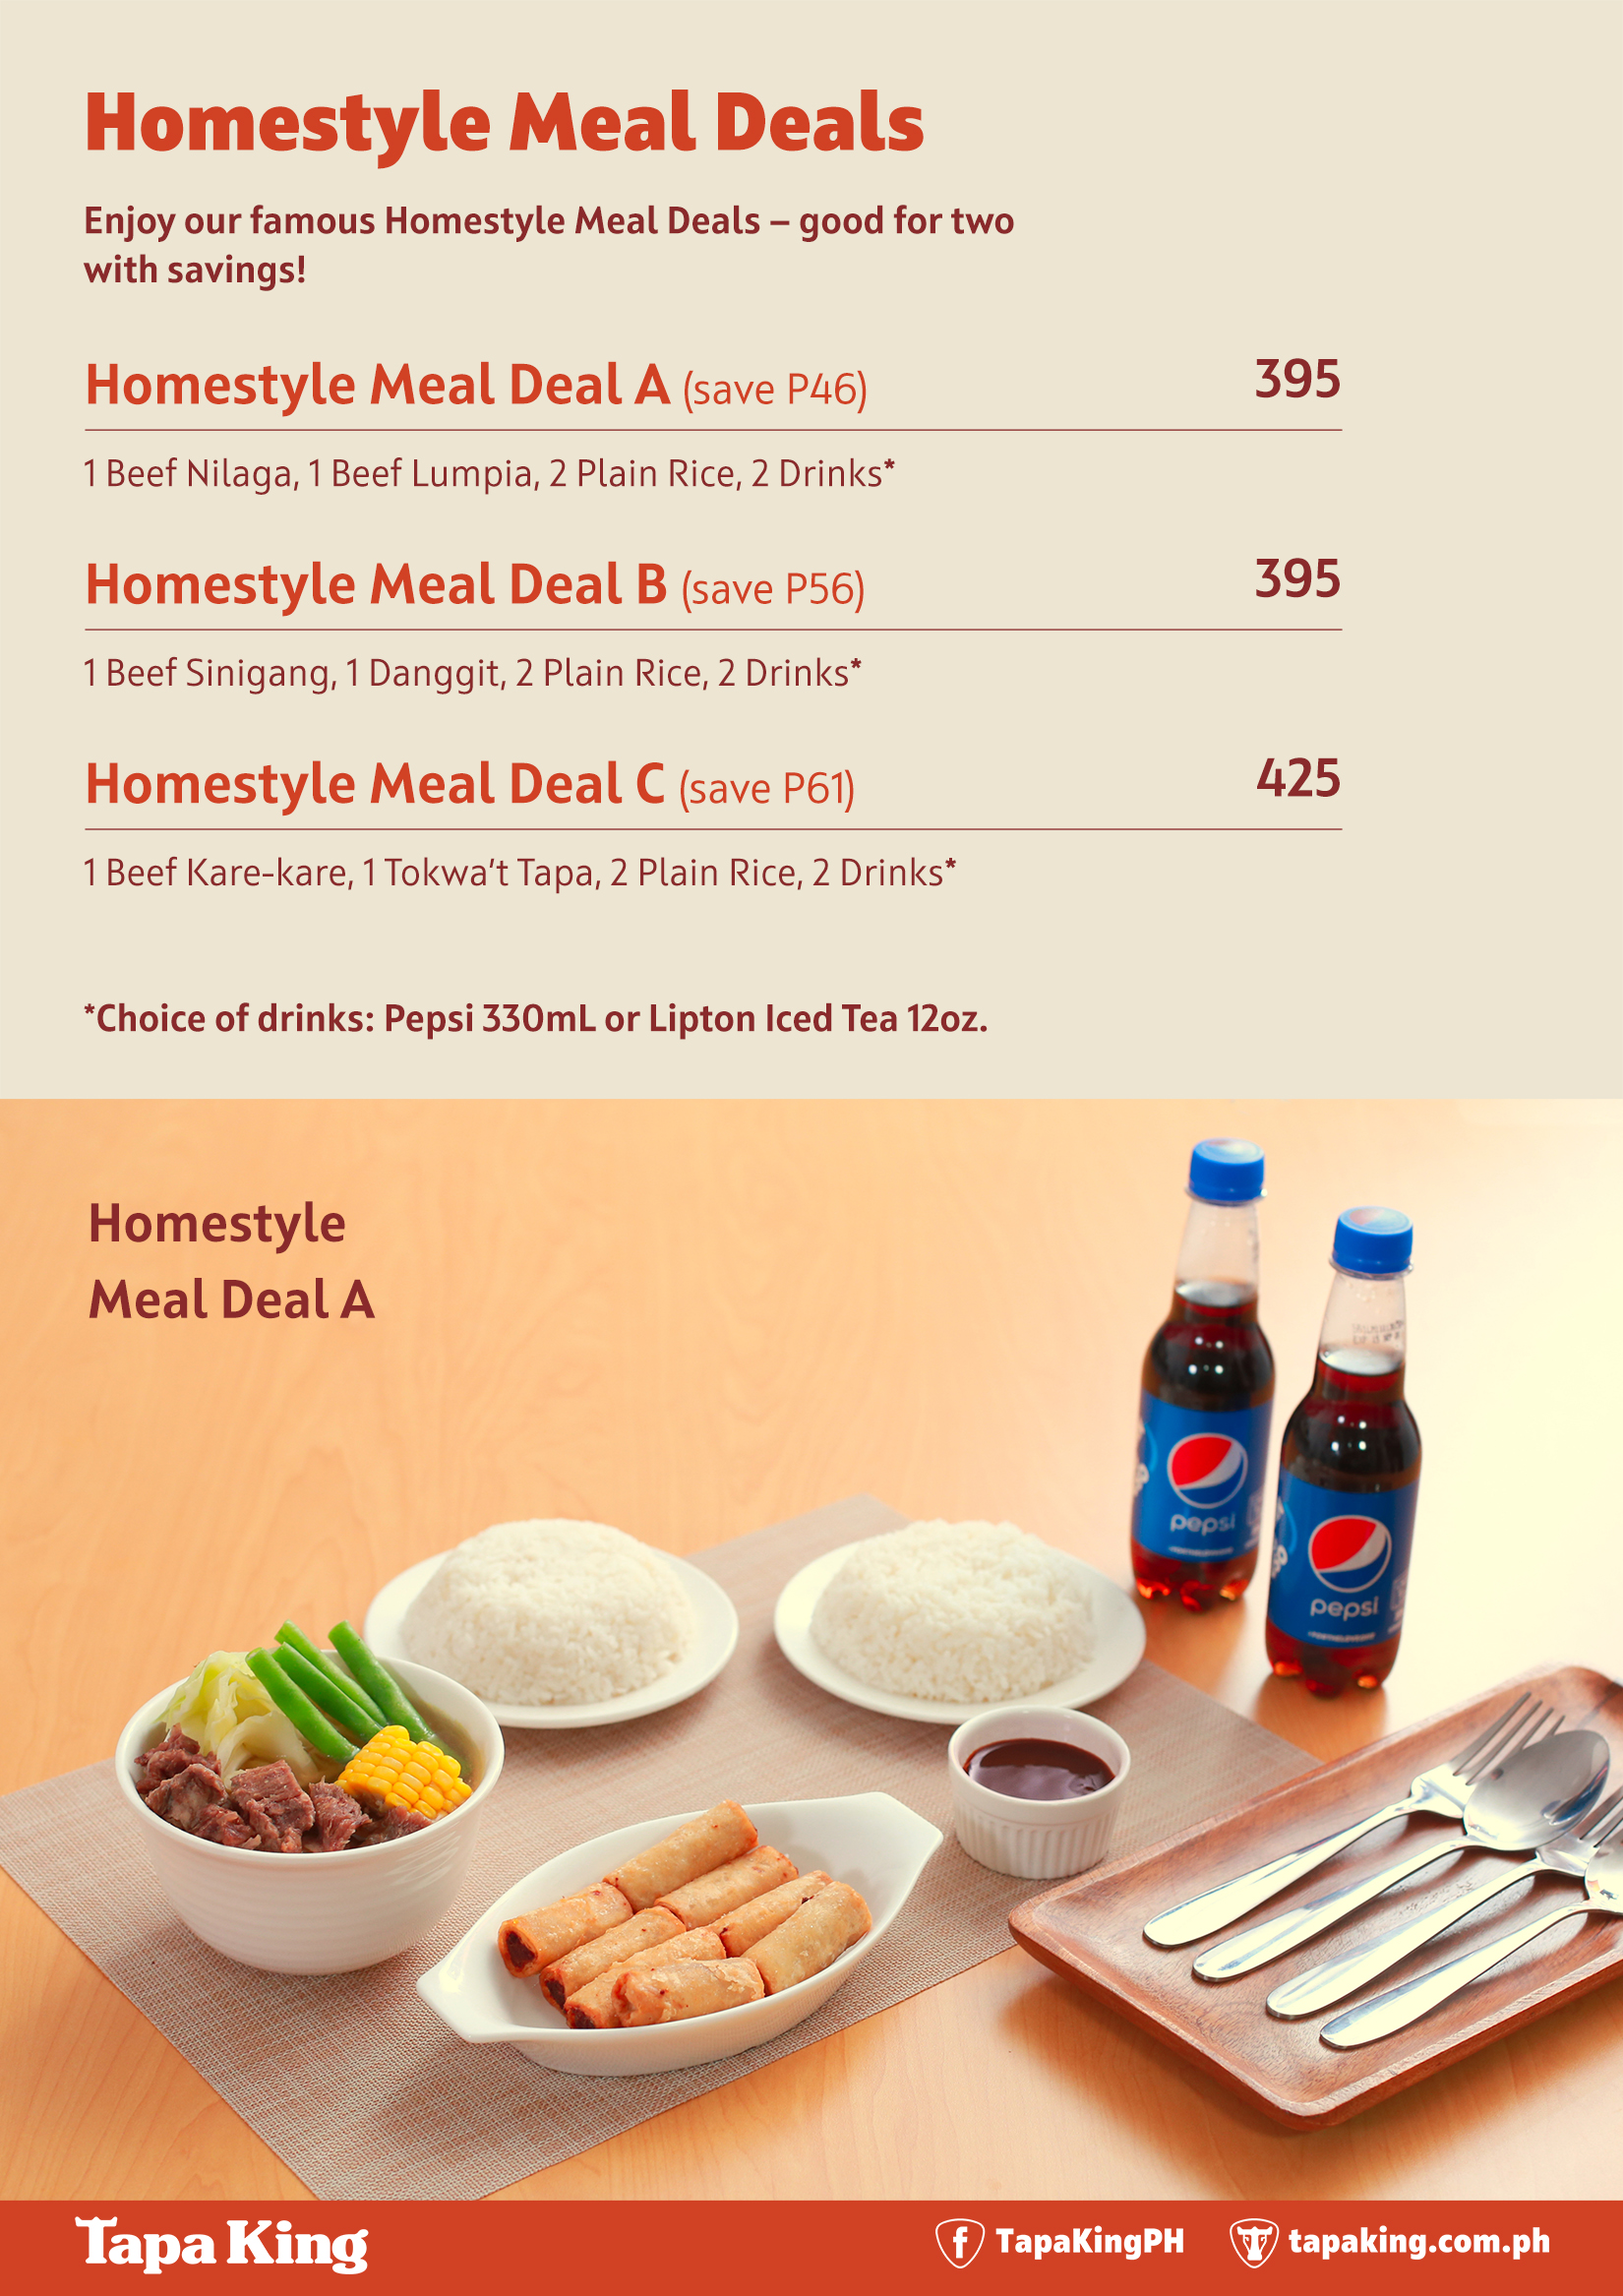 Homestyle Meal Deals